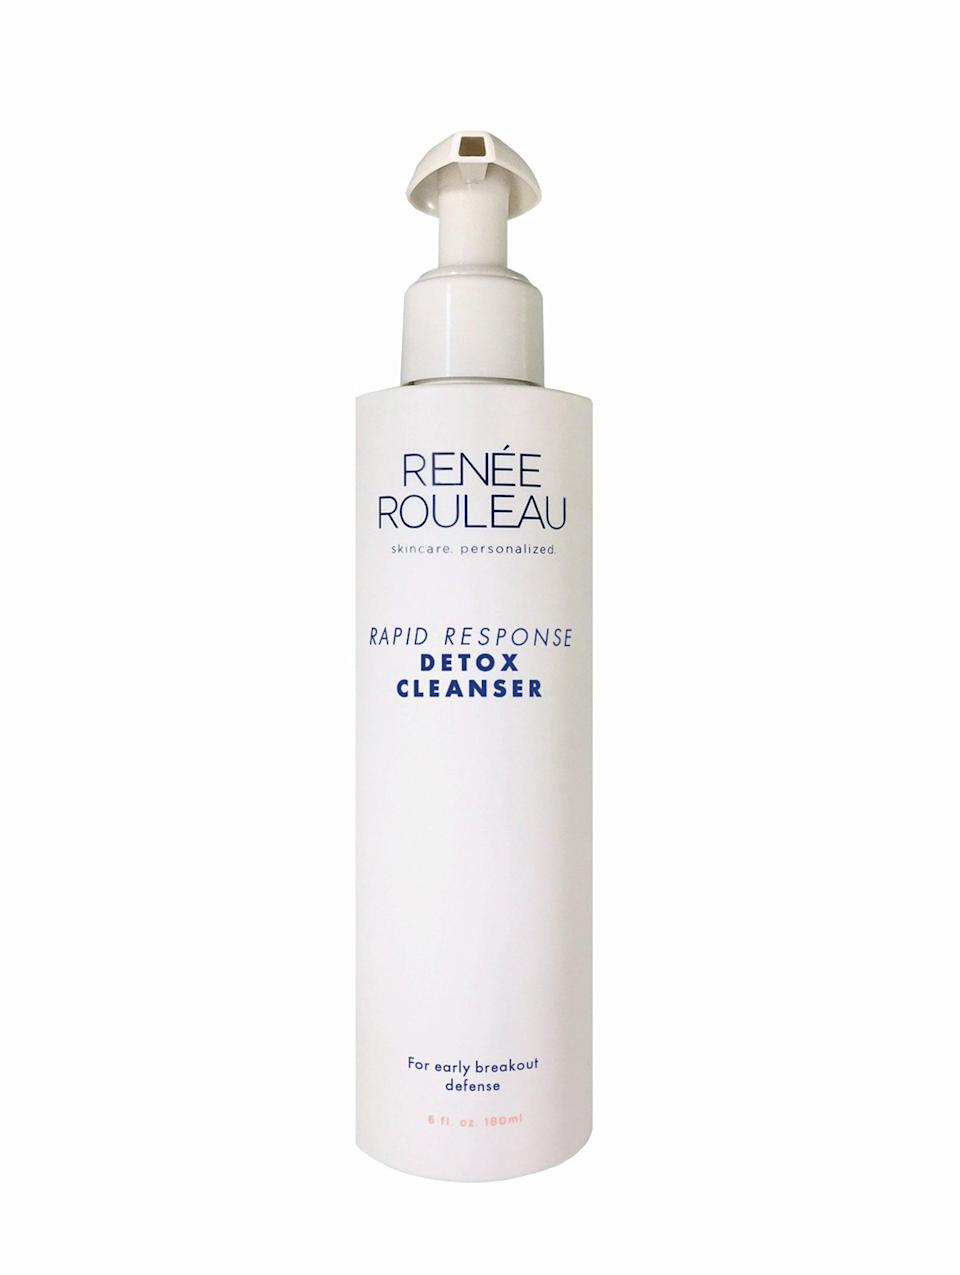 """<p>Some people might think the <span>Renee Rouleau Rapid Response Detox Cleanser</span> ($43) smells too """"medicinal,"""" but we think it smells like it works. Which, by the way, it does: we use it after spending too much time in our makeup, and it completely dissolves all dirt and gunk from pores - no breakouts in sight. It does come out a bright yellow shade (which, in truth, isn't pretty), but it's what's on the inside that counts.</p>"""